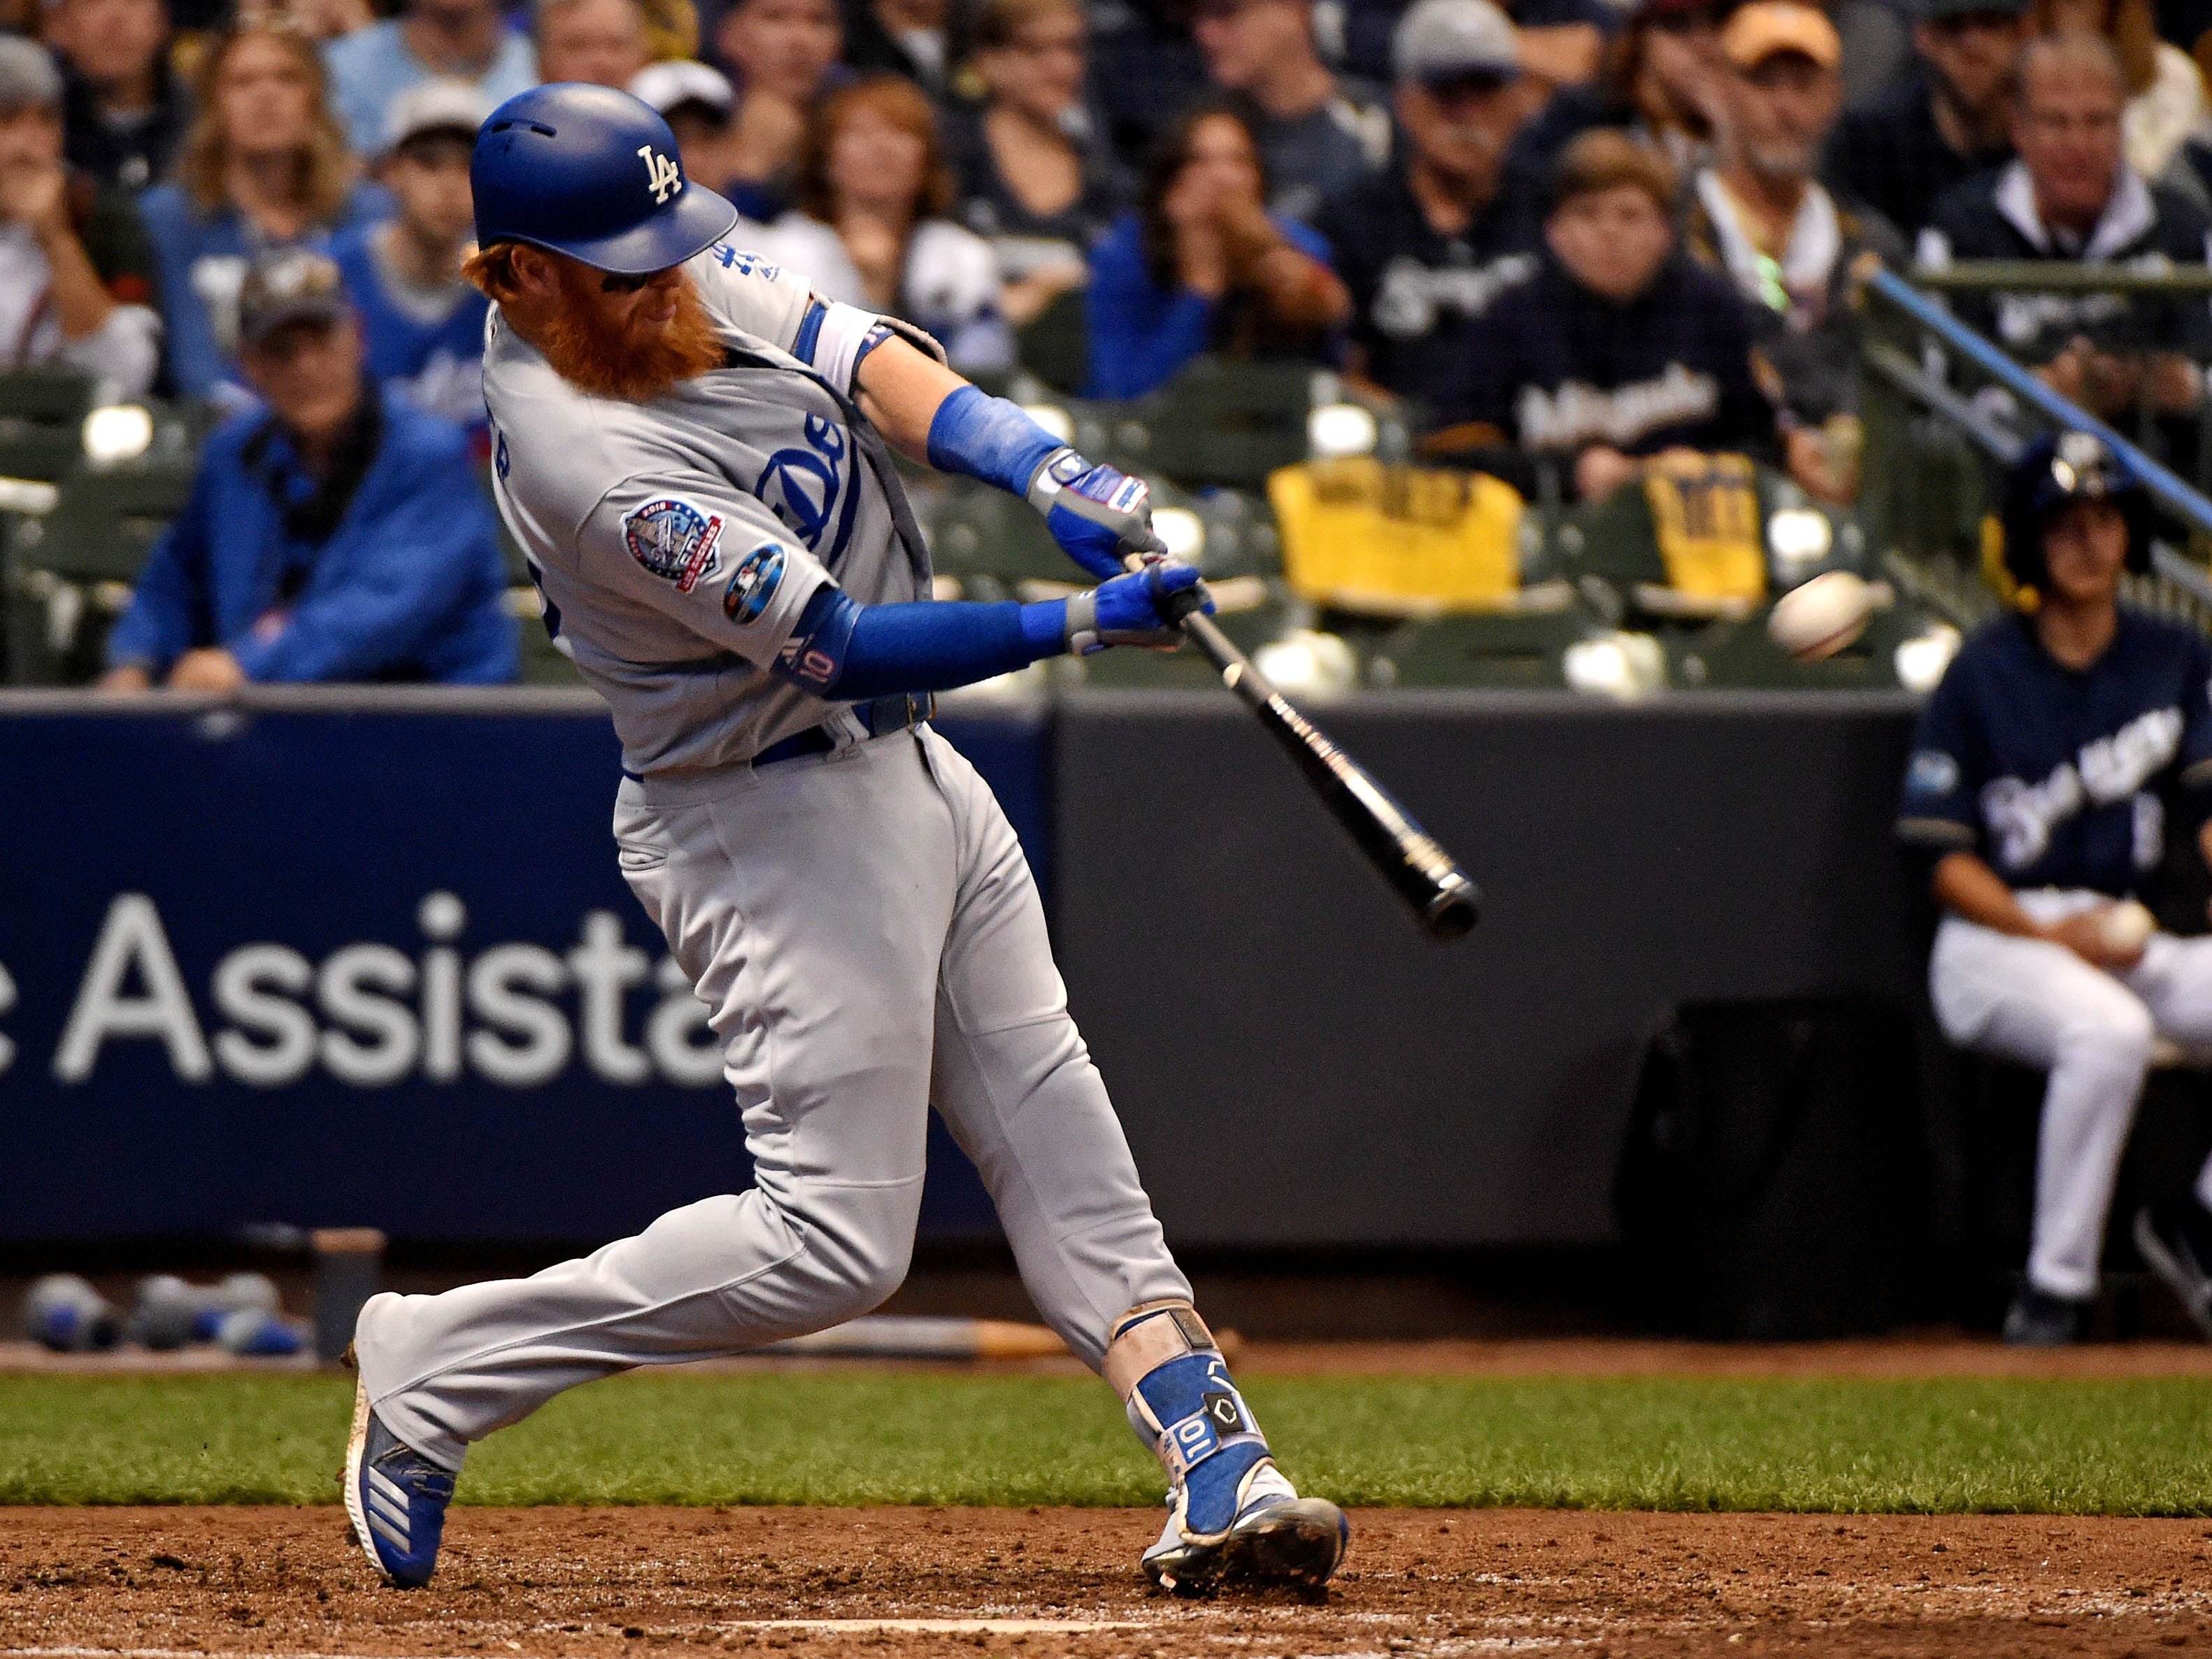 NLCS Game 2: Dodgers third baseman Justin Turner slugs a go-ahead two-run home run in the eighth inning.